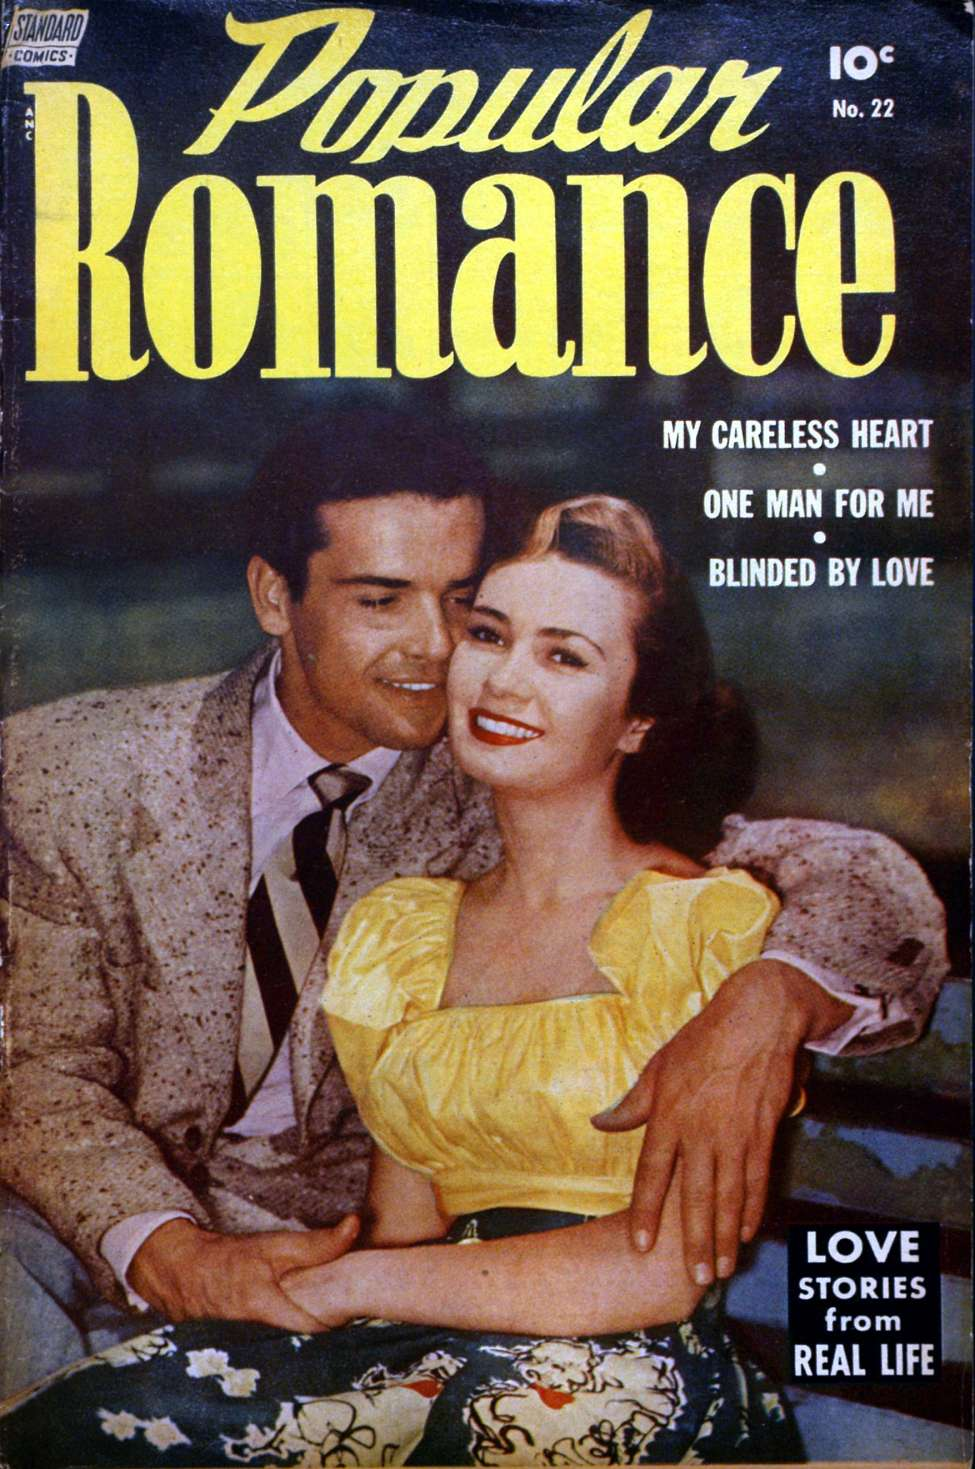 Comic Book Cover For Popular Romance #22